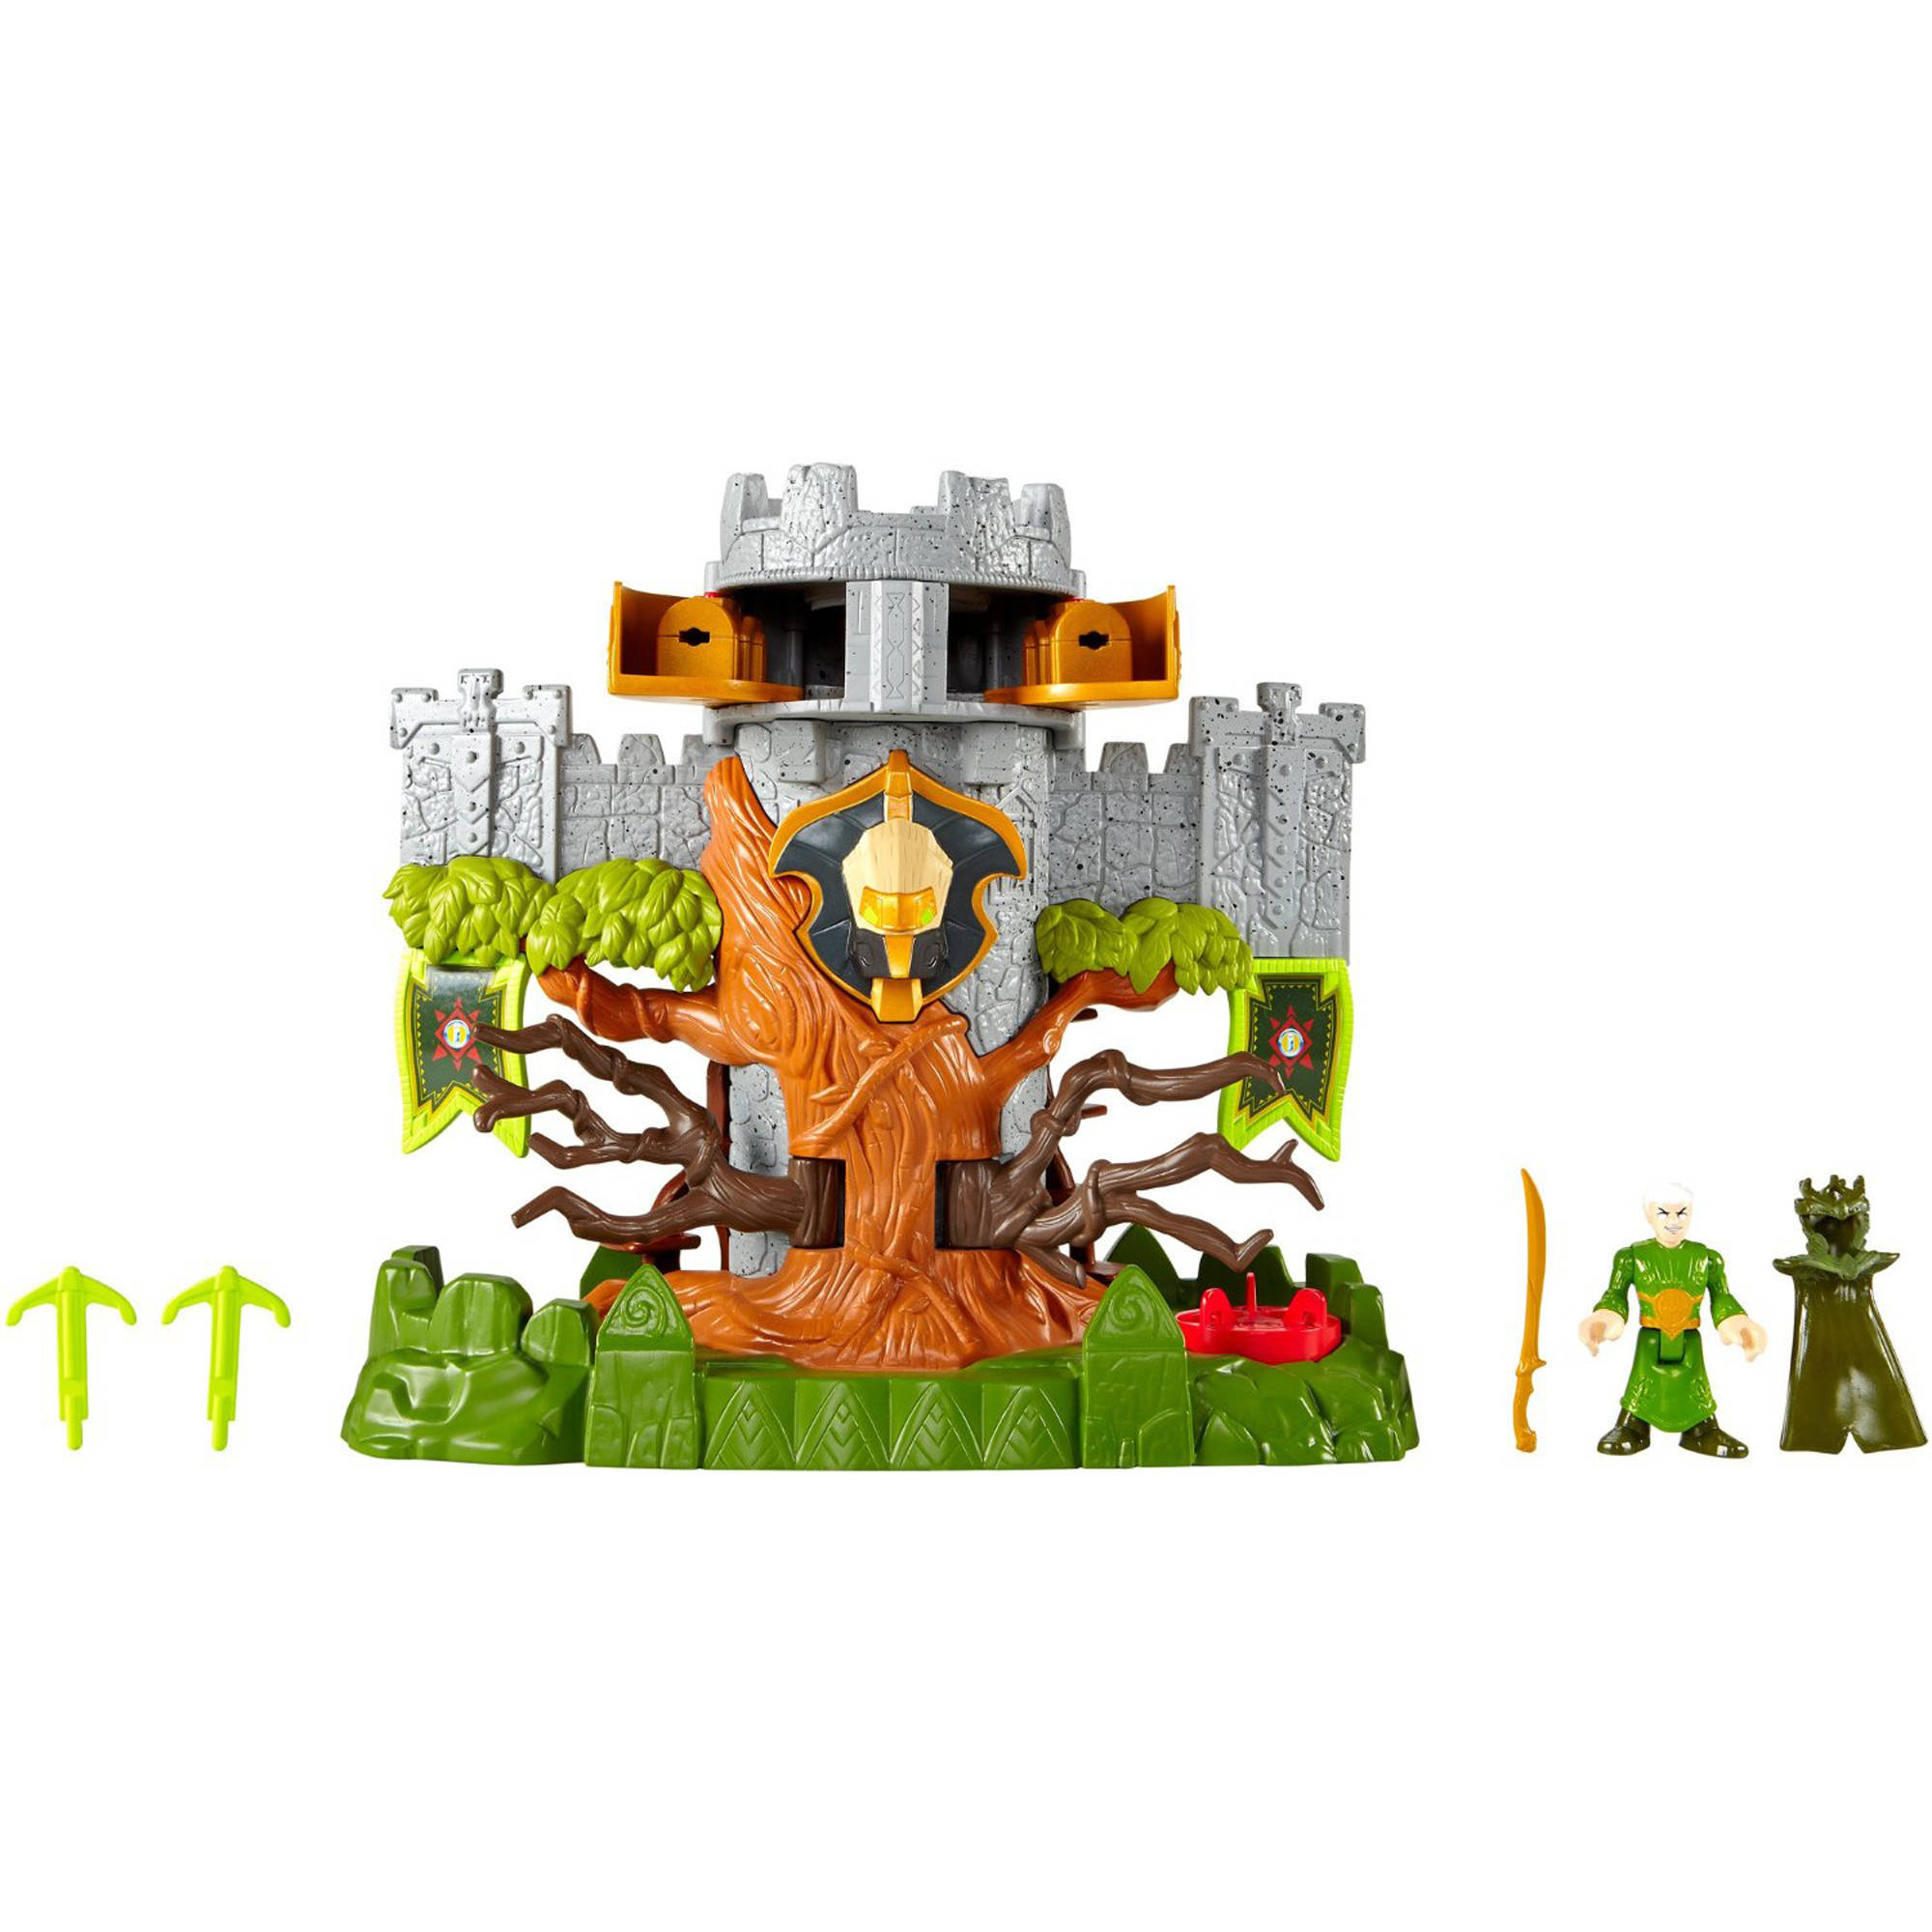 FisherPrice Imaginext Woodland Castle  Walmartcom